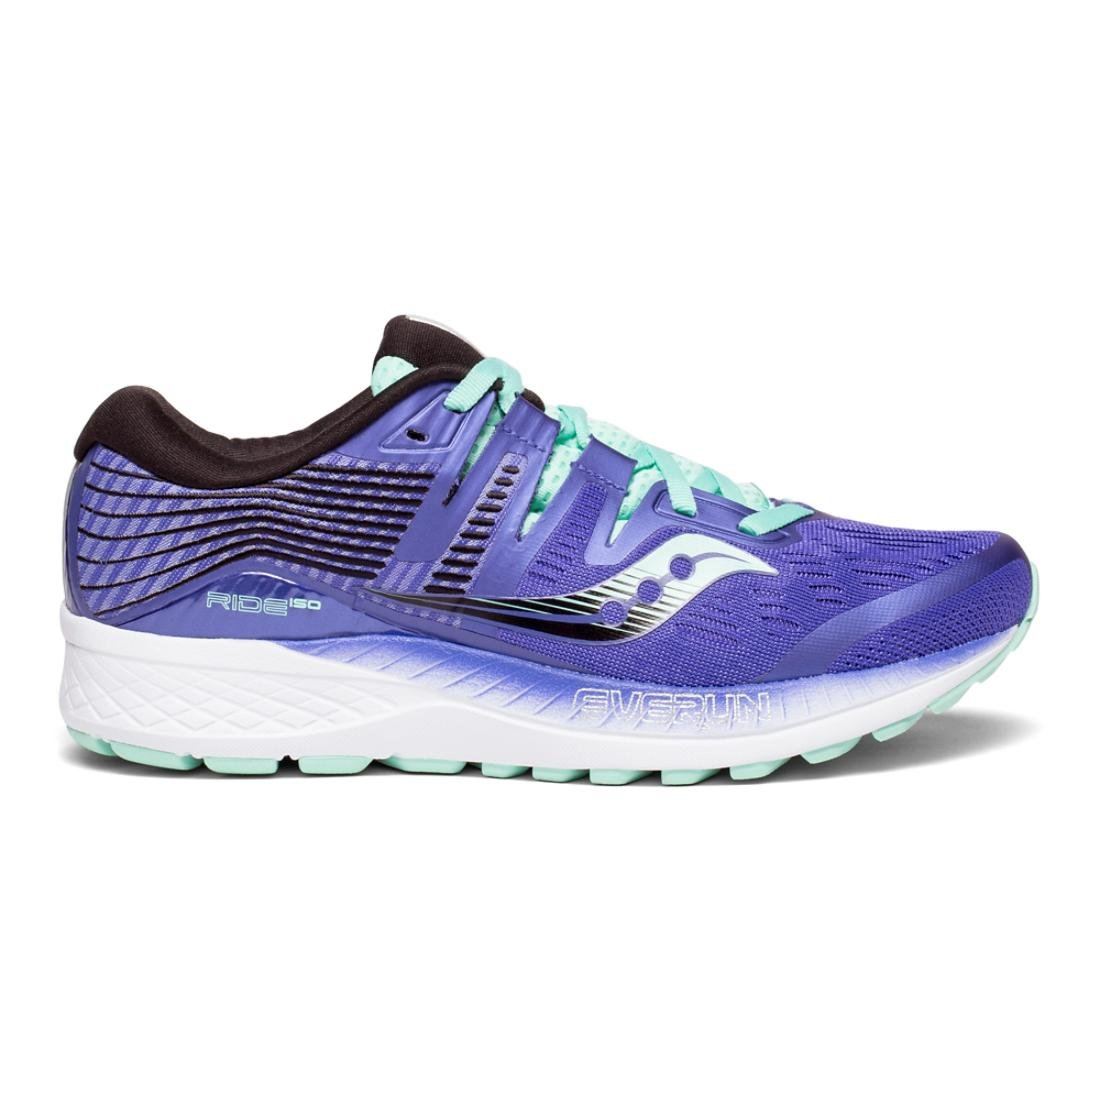 Saucony Women's Ride ISO Running Shoe B078PHGDDP 11 B(M) US|Violet/Black/Aqua